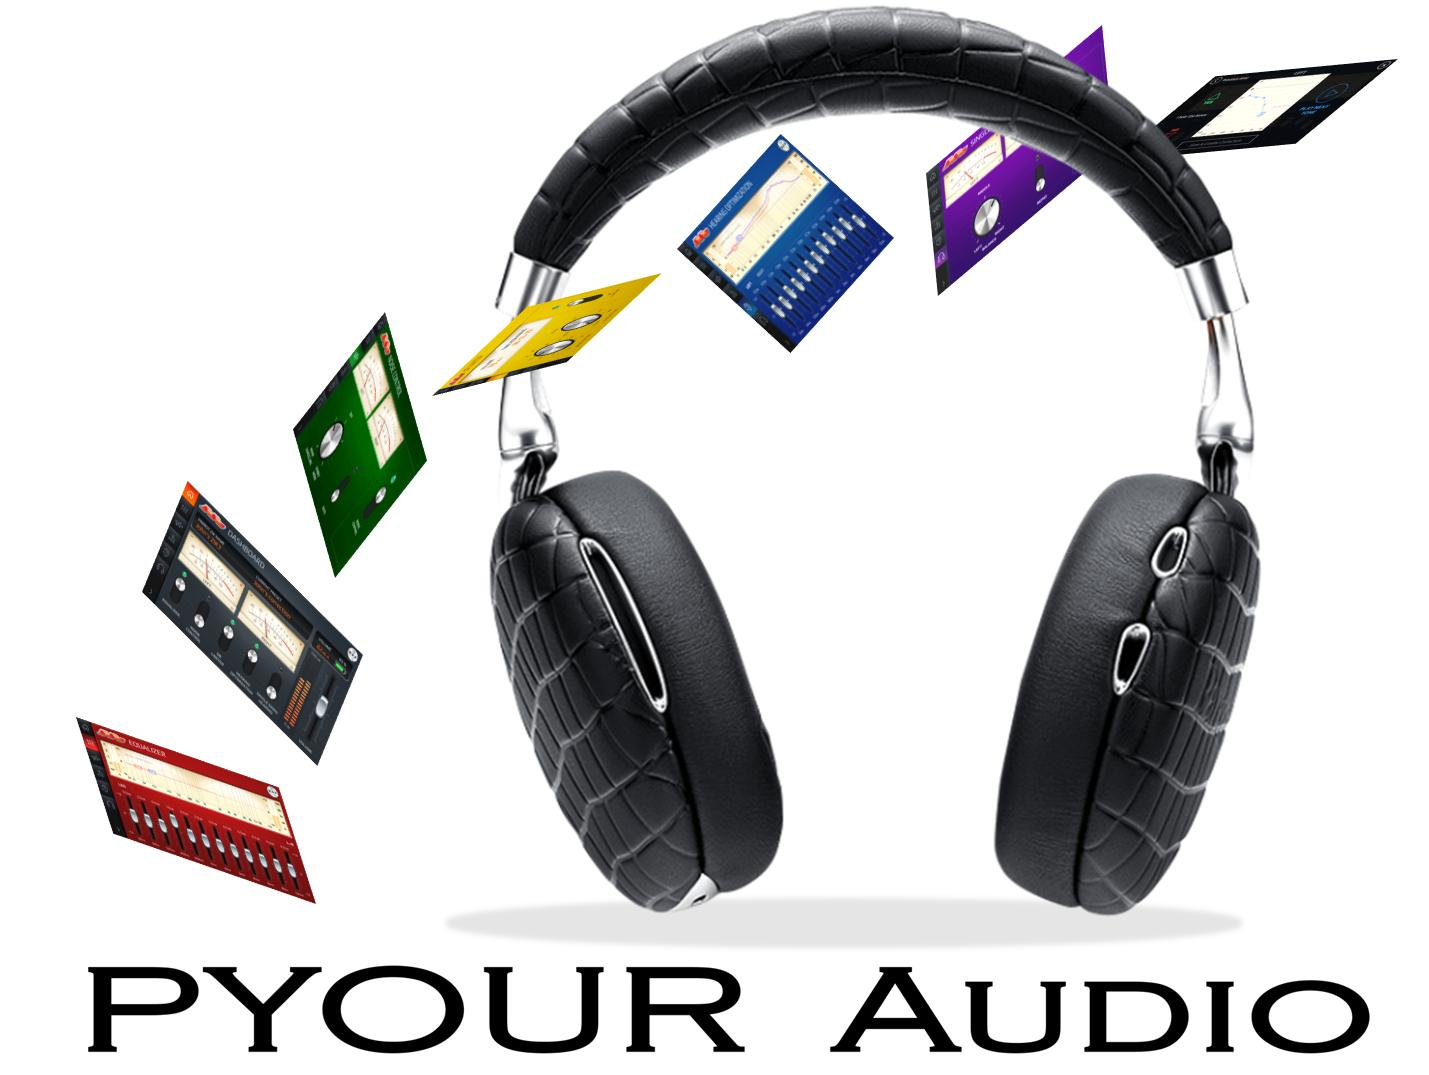 PYOUR Audio headphone and app